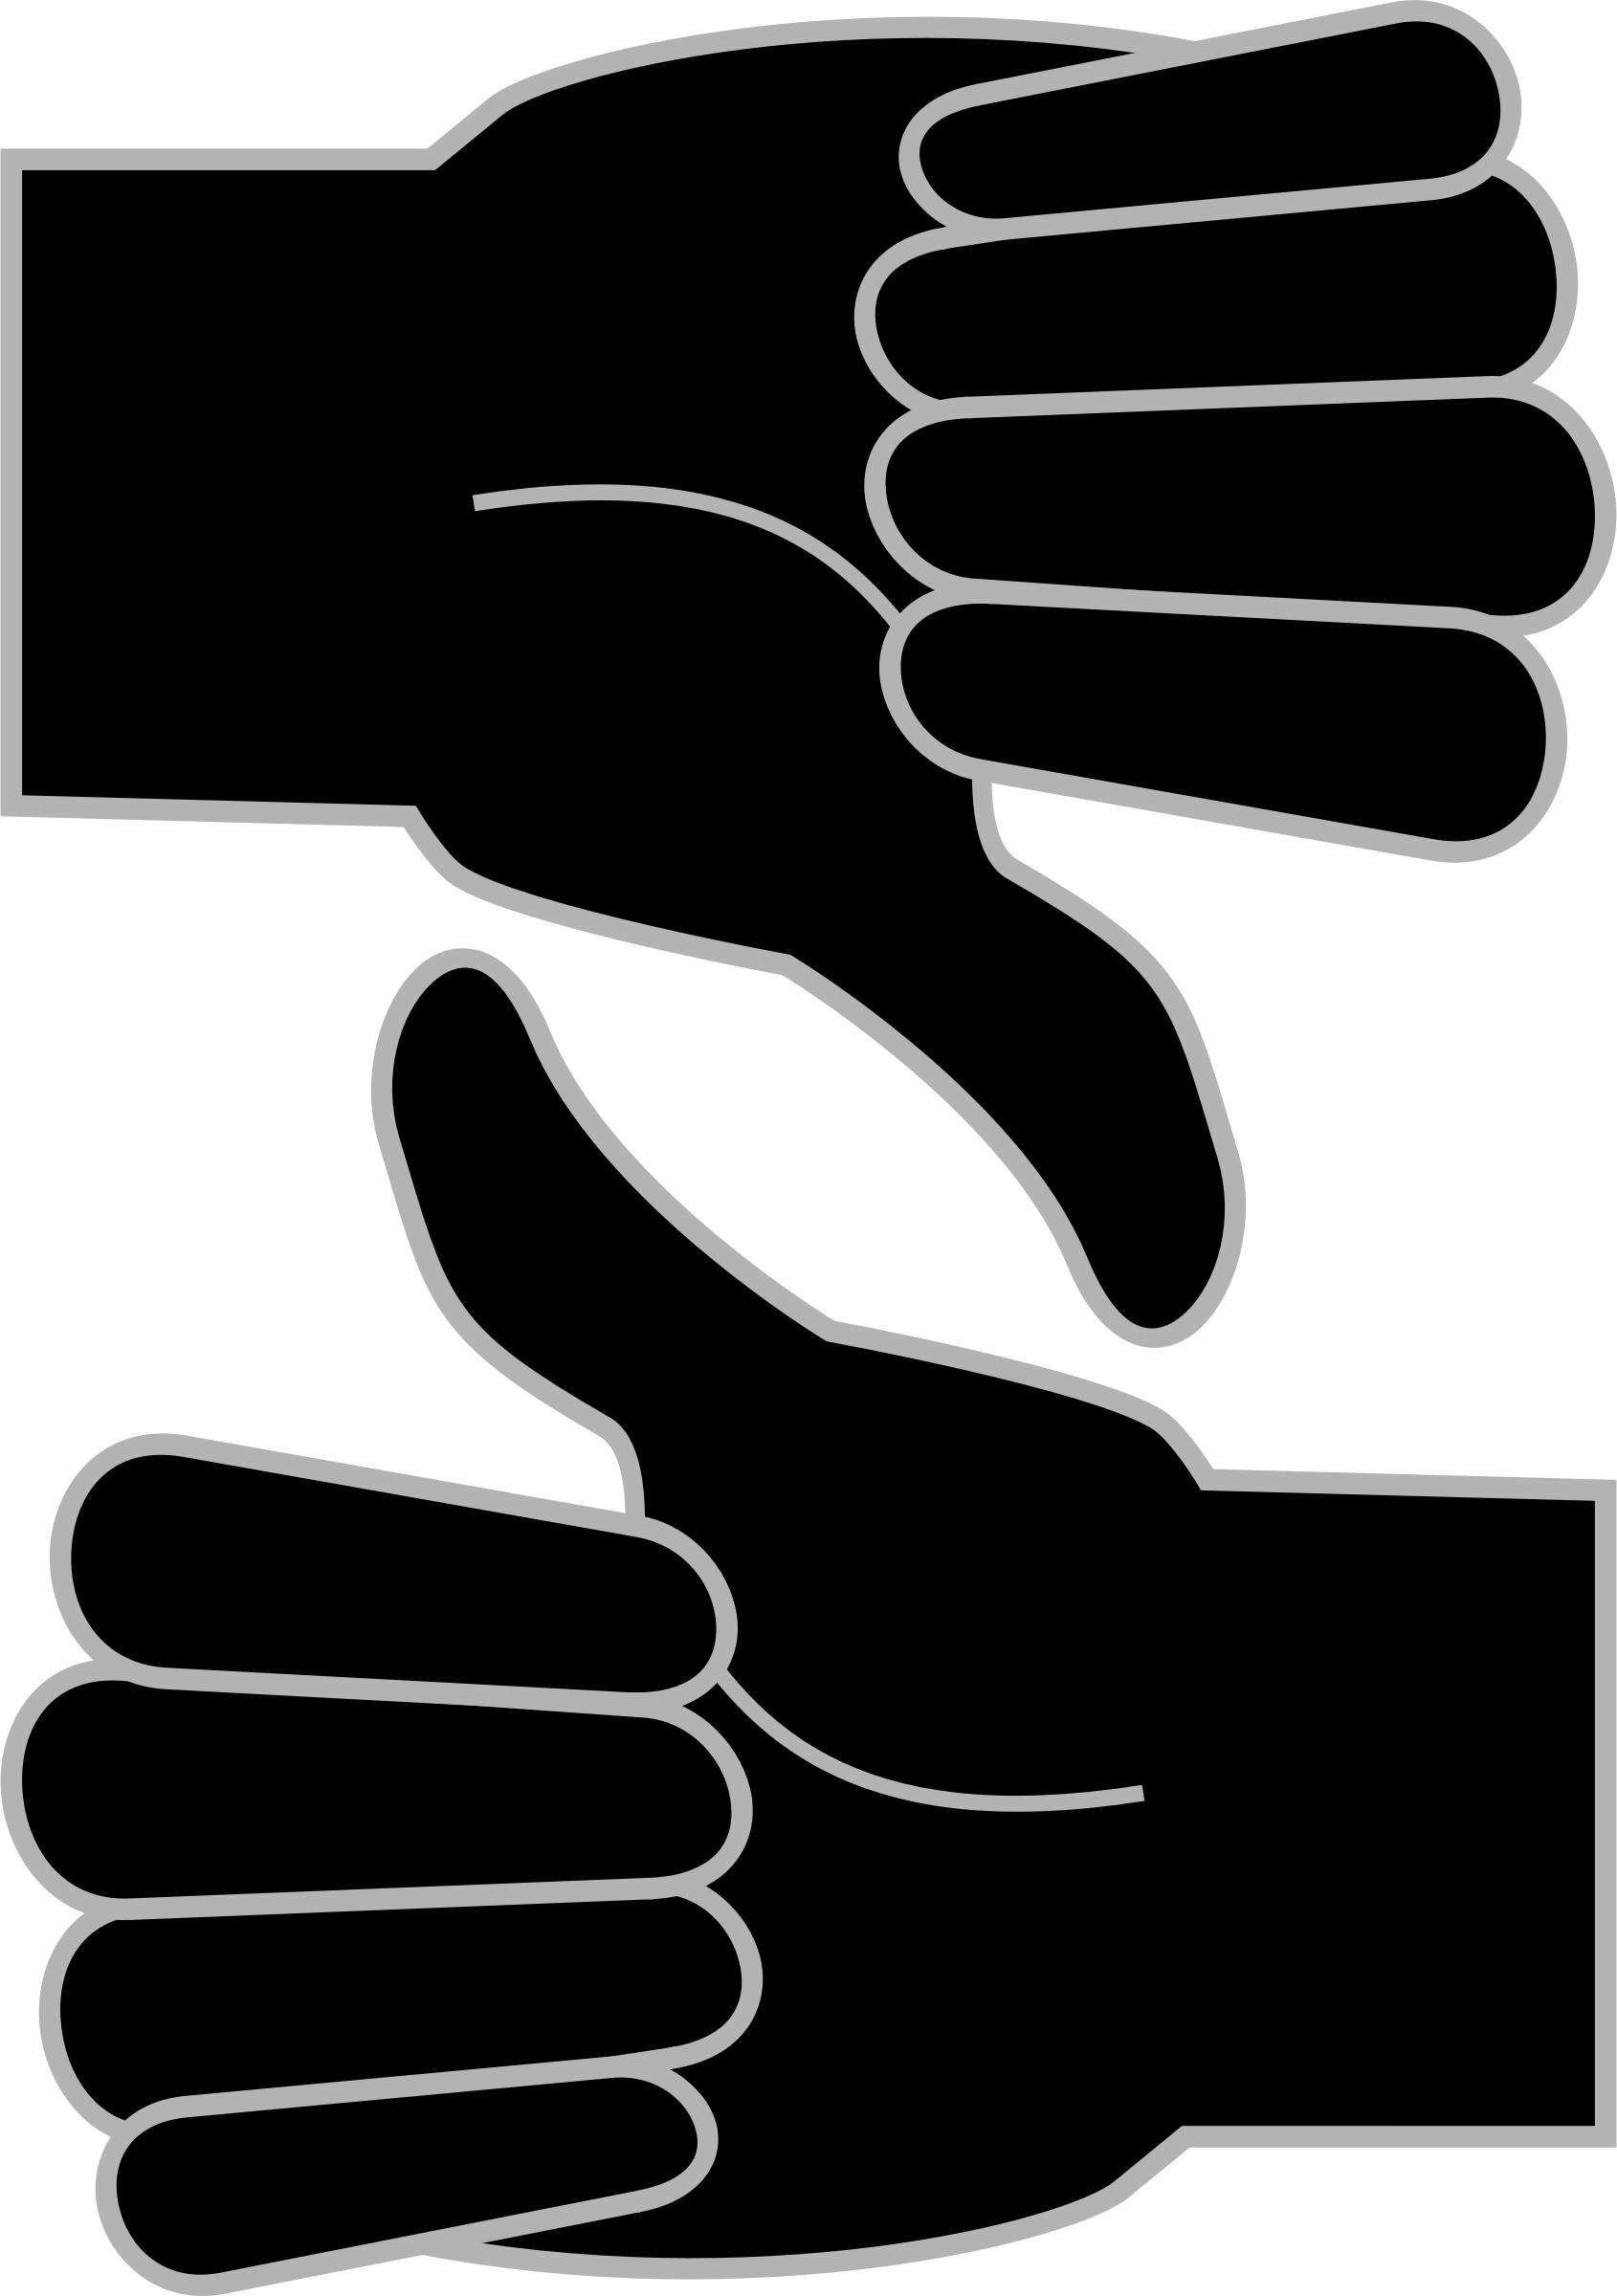 Clipart thumbs up png clipart library stock Clipart - Thumbs Up - Thumbs Down clipart library stock